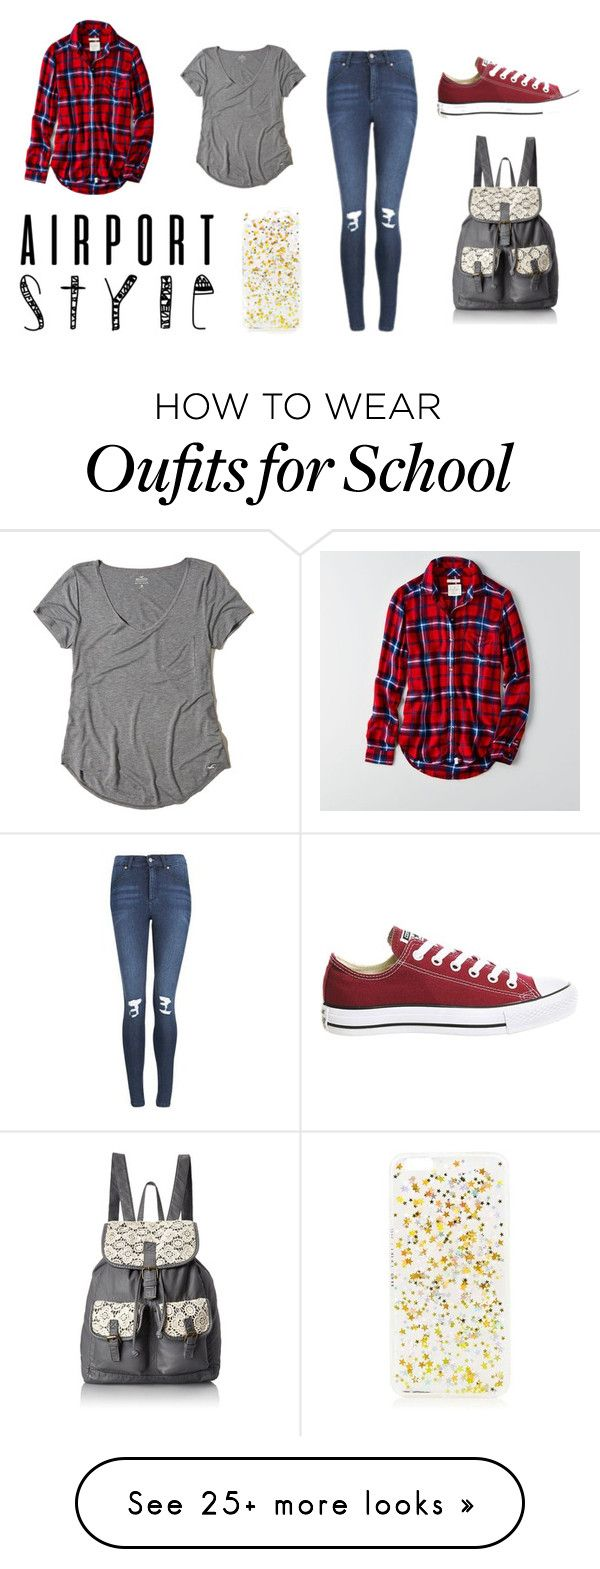 """School #77"" by annao133 on Polyvore featuring American Eagle Outfitters, Hollister Co., Skinnydip, Cheap Monday, T-shirt & Jeans and Converse"